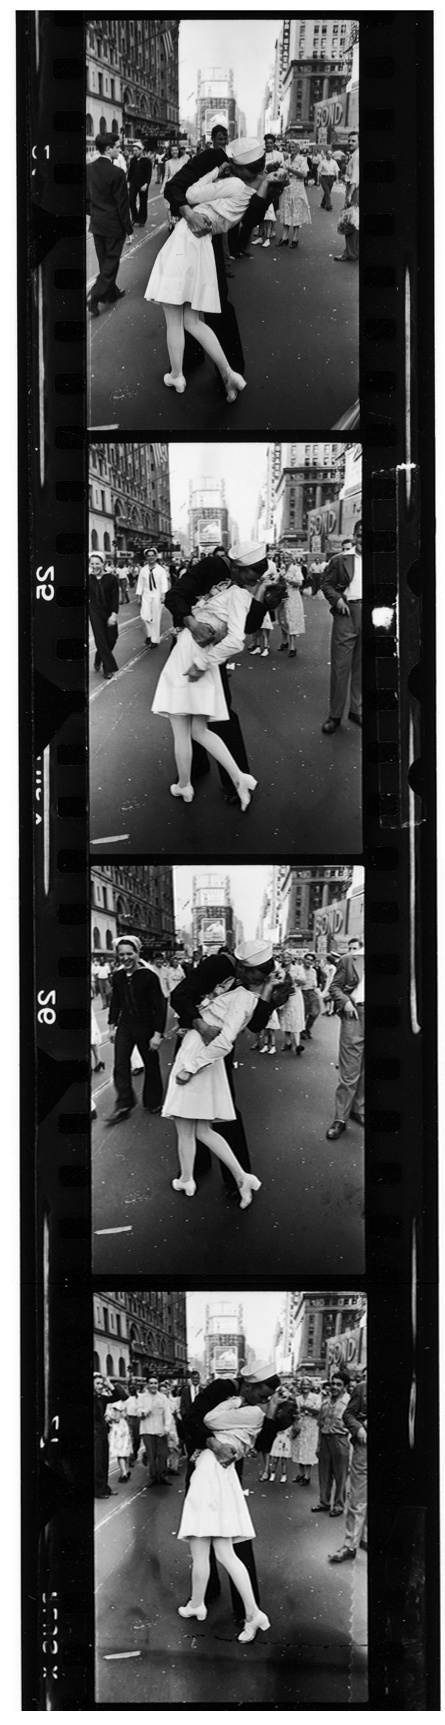 """Alfred Eisenstaedt - Time  Life Pictures/Getty Images...Caption from the August 27, 1945, issue of LIFE. """"In the middle of New York's Times Square a white-clad girl clutches her purse and skirt as an uninhibited sailor plants his lips squarely on hers."""" S)"""